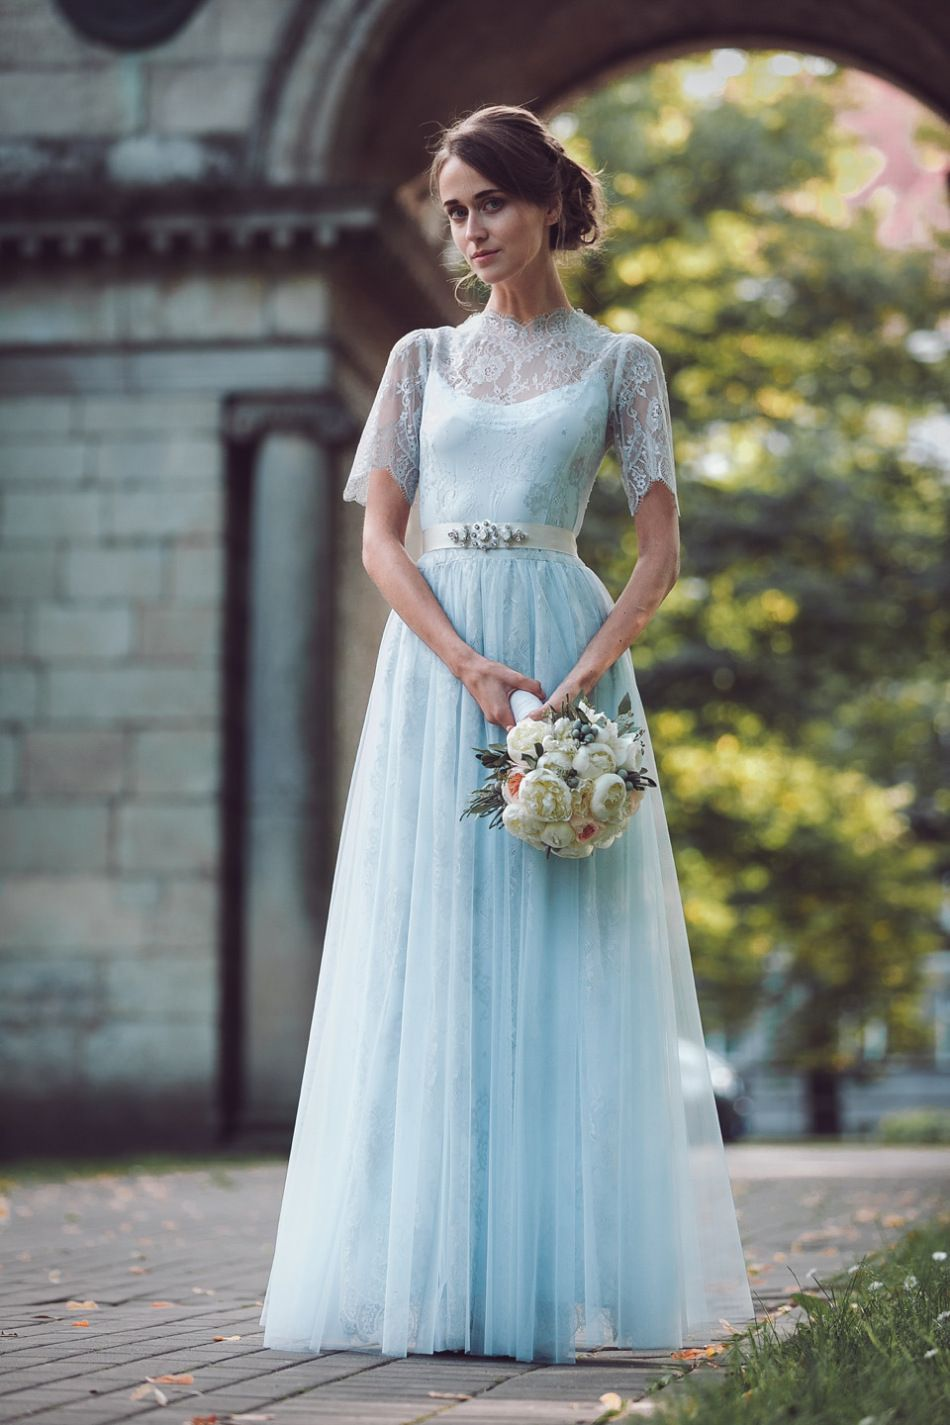 Novia vestida de color azul el día de su boda | Weddings | Pinterest ...